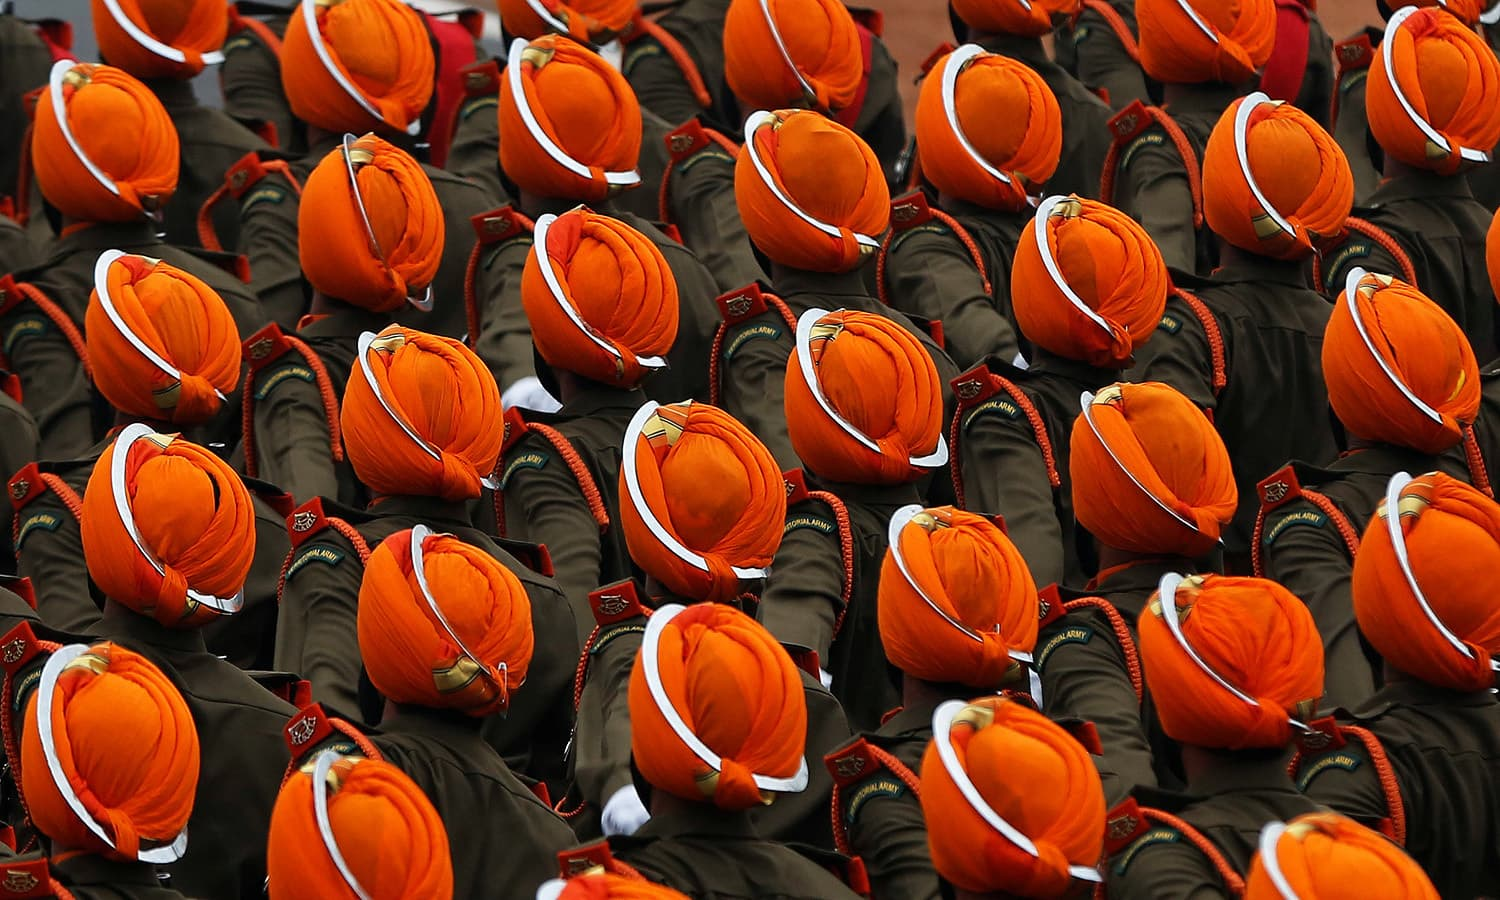 Indian soldiers march during the Republic Day parade in New Delhi.— Reuters